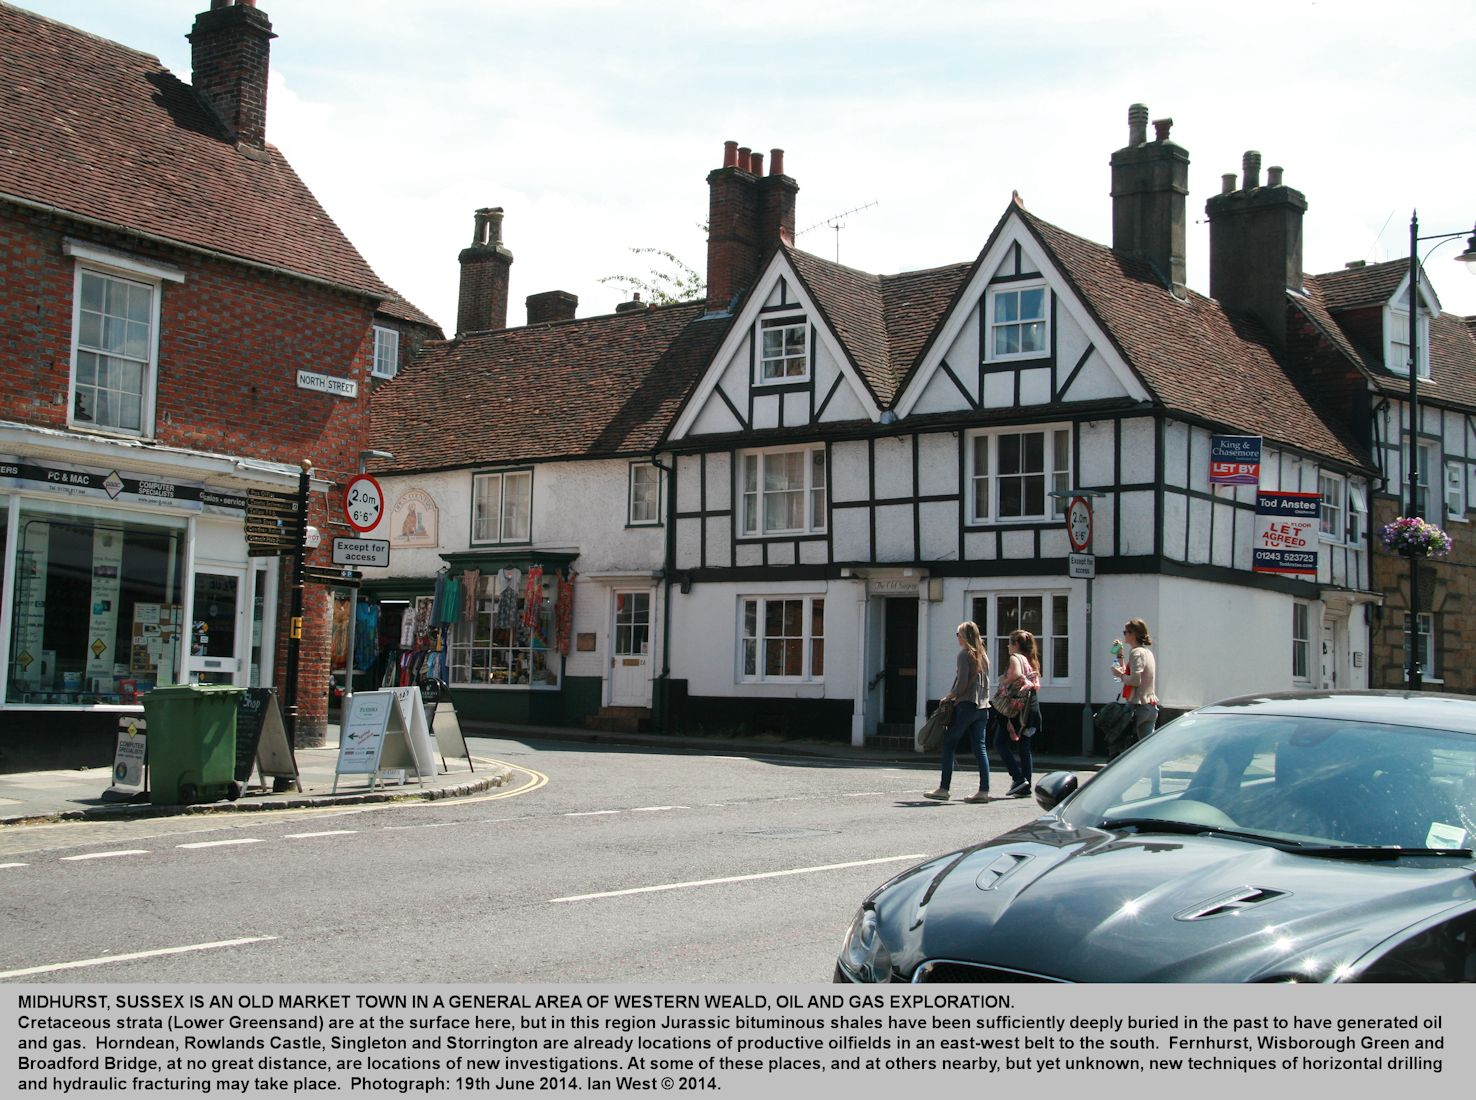 North Street in the old market town of Midhurst, West Sussex, 19th June 2014